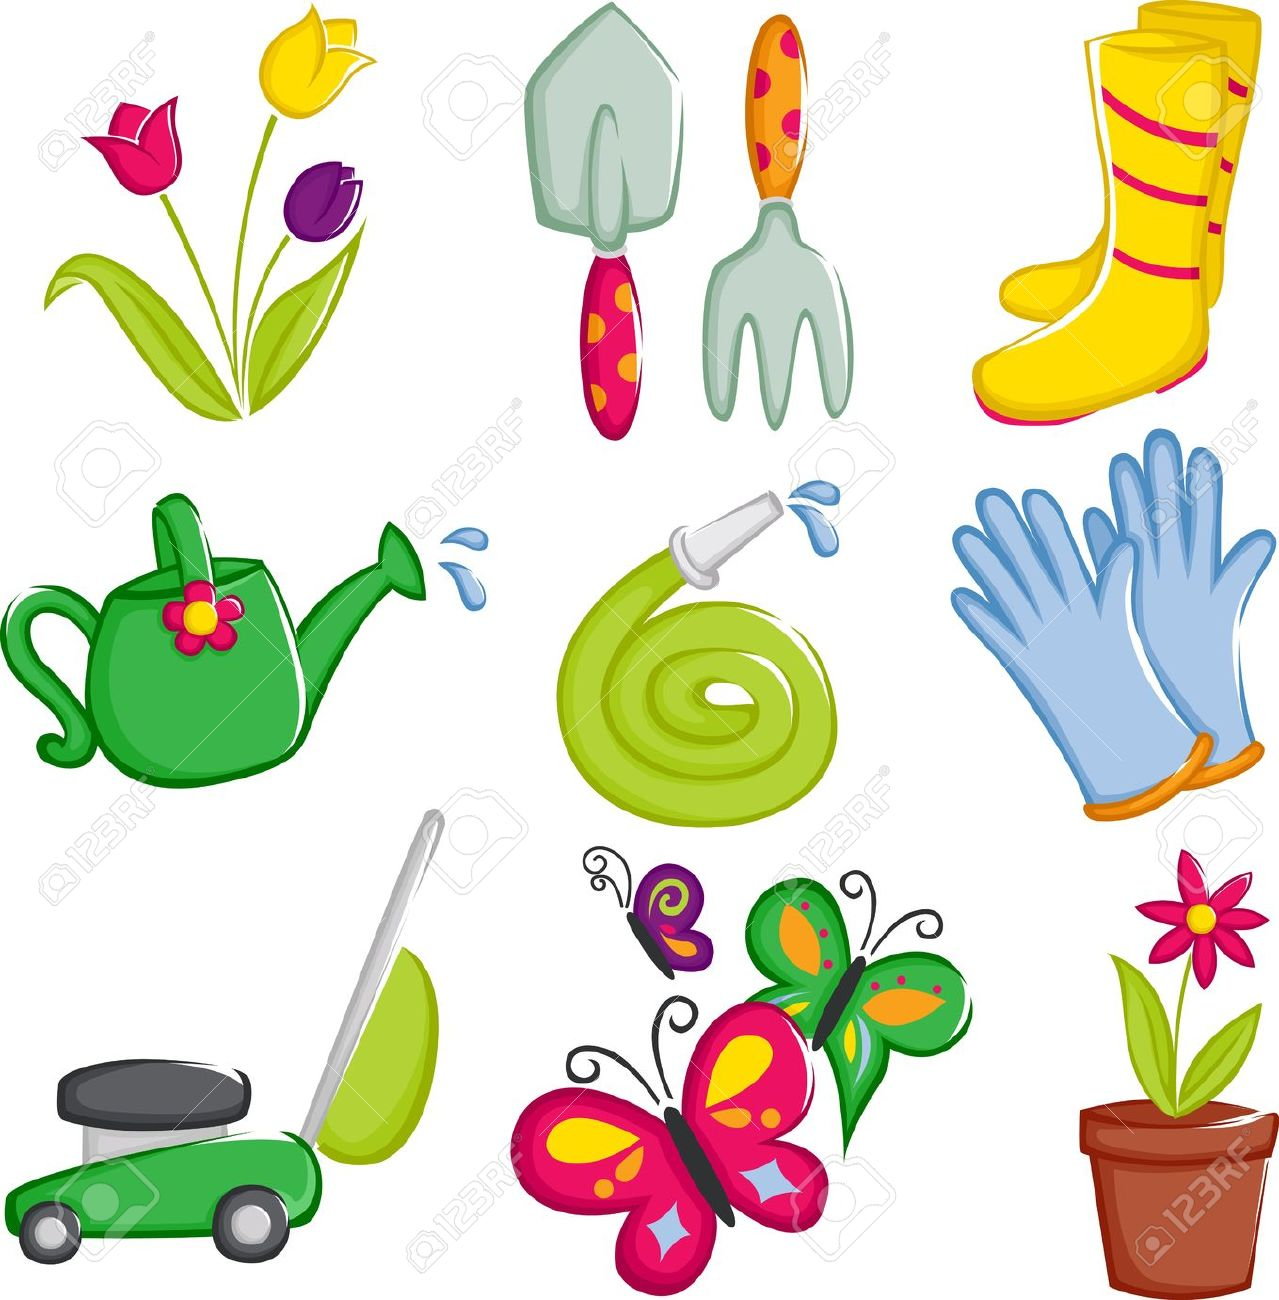 Garden trowel clipart clipground for Garden design graphics